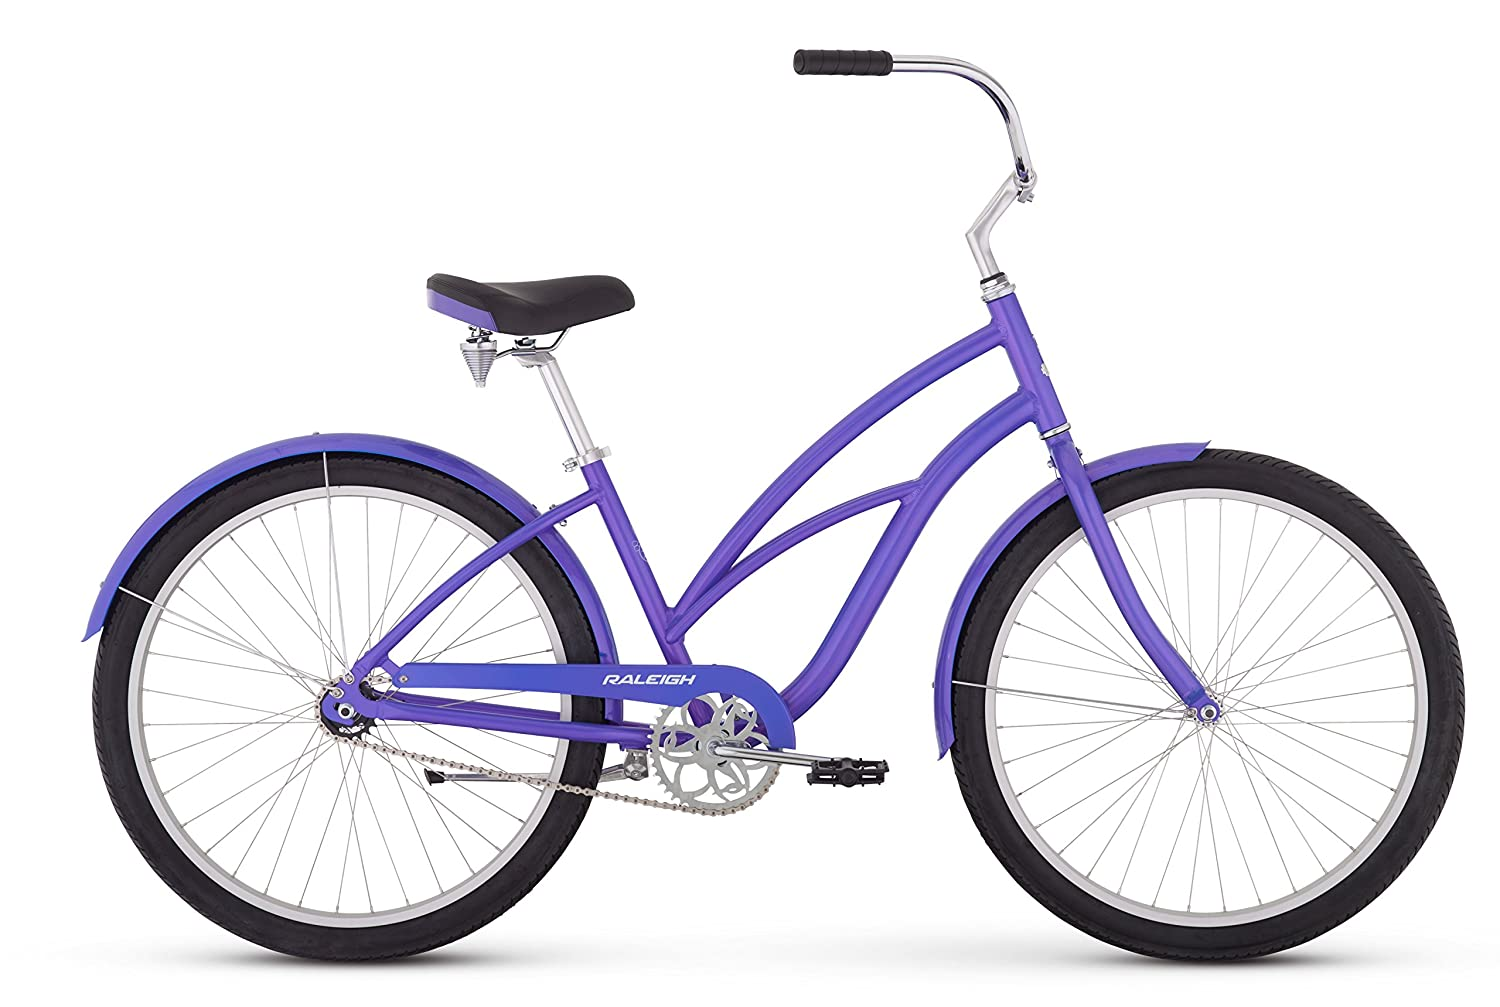 Raleigh Bikes Women s Retroglide Step Thru Cruiser Bike, 26 One Size, Purple